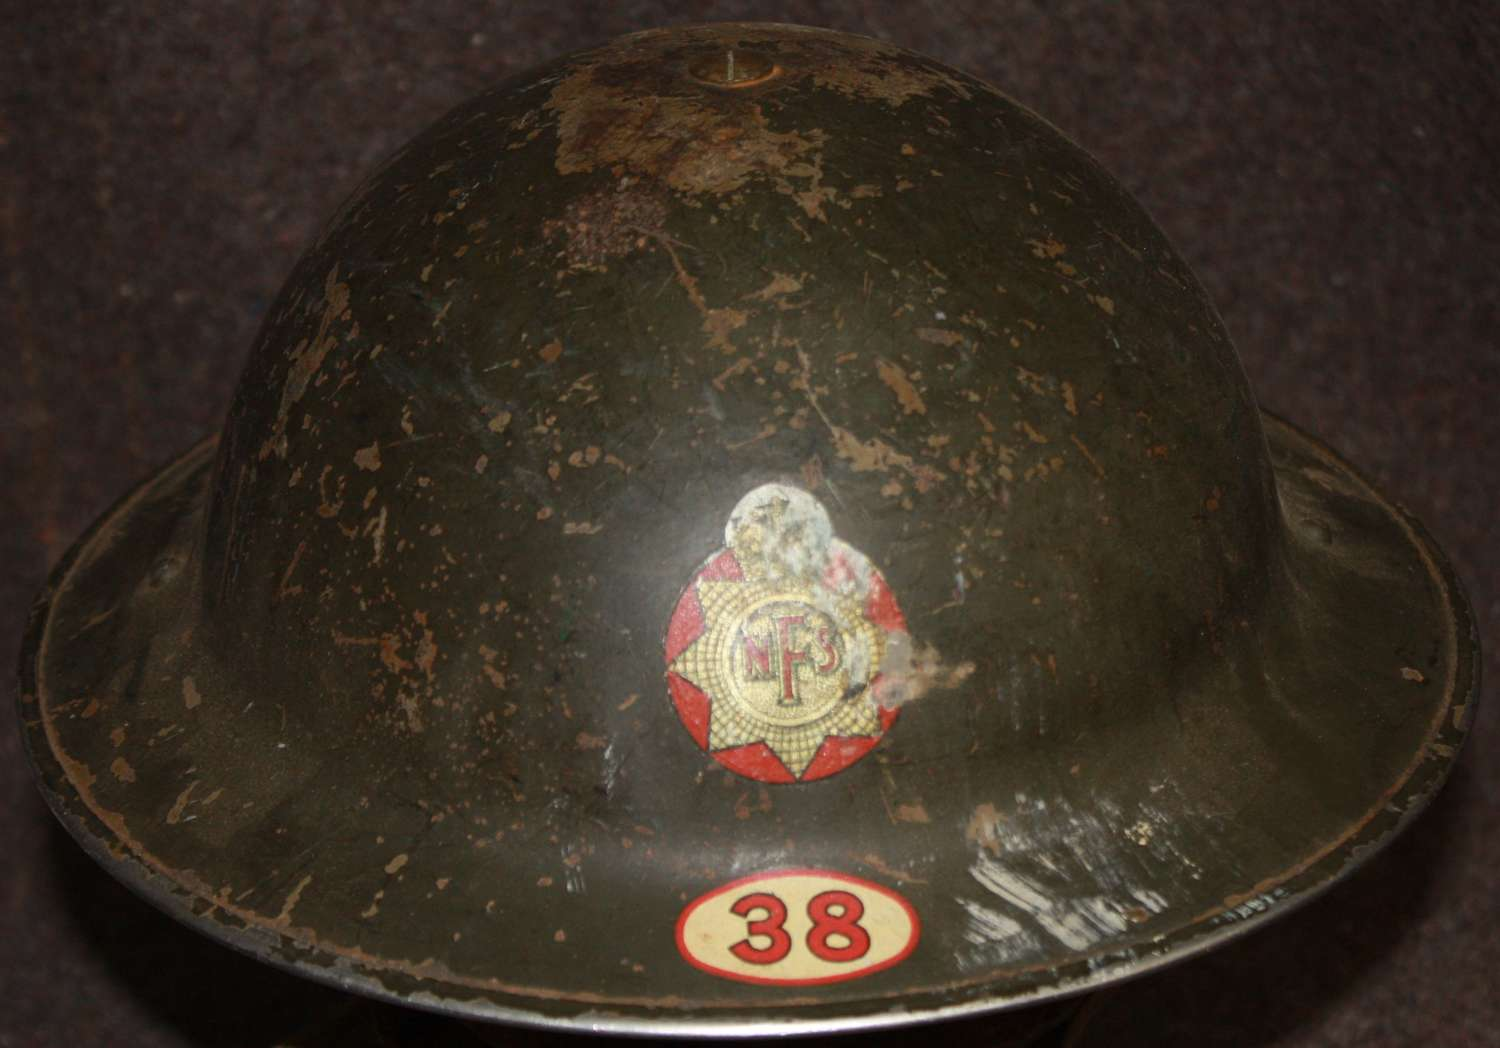 A WWII NFS HELMET AREA 38 HELMET GOOD USED EXAMPLE